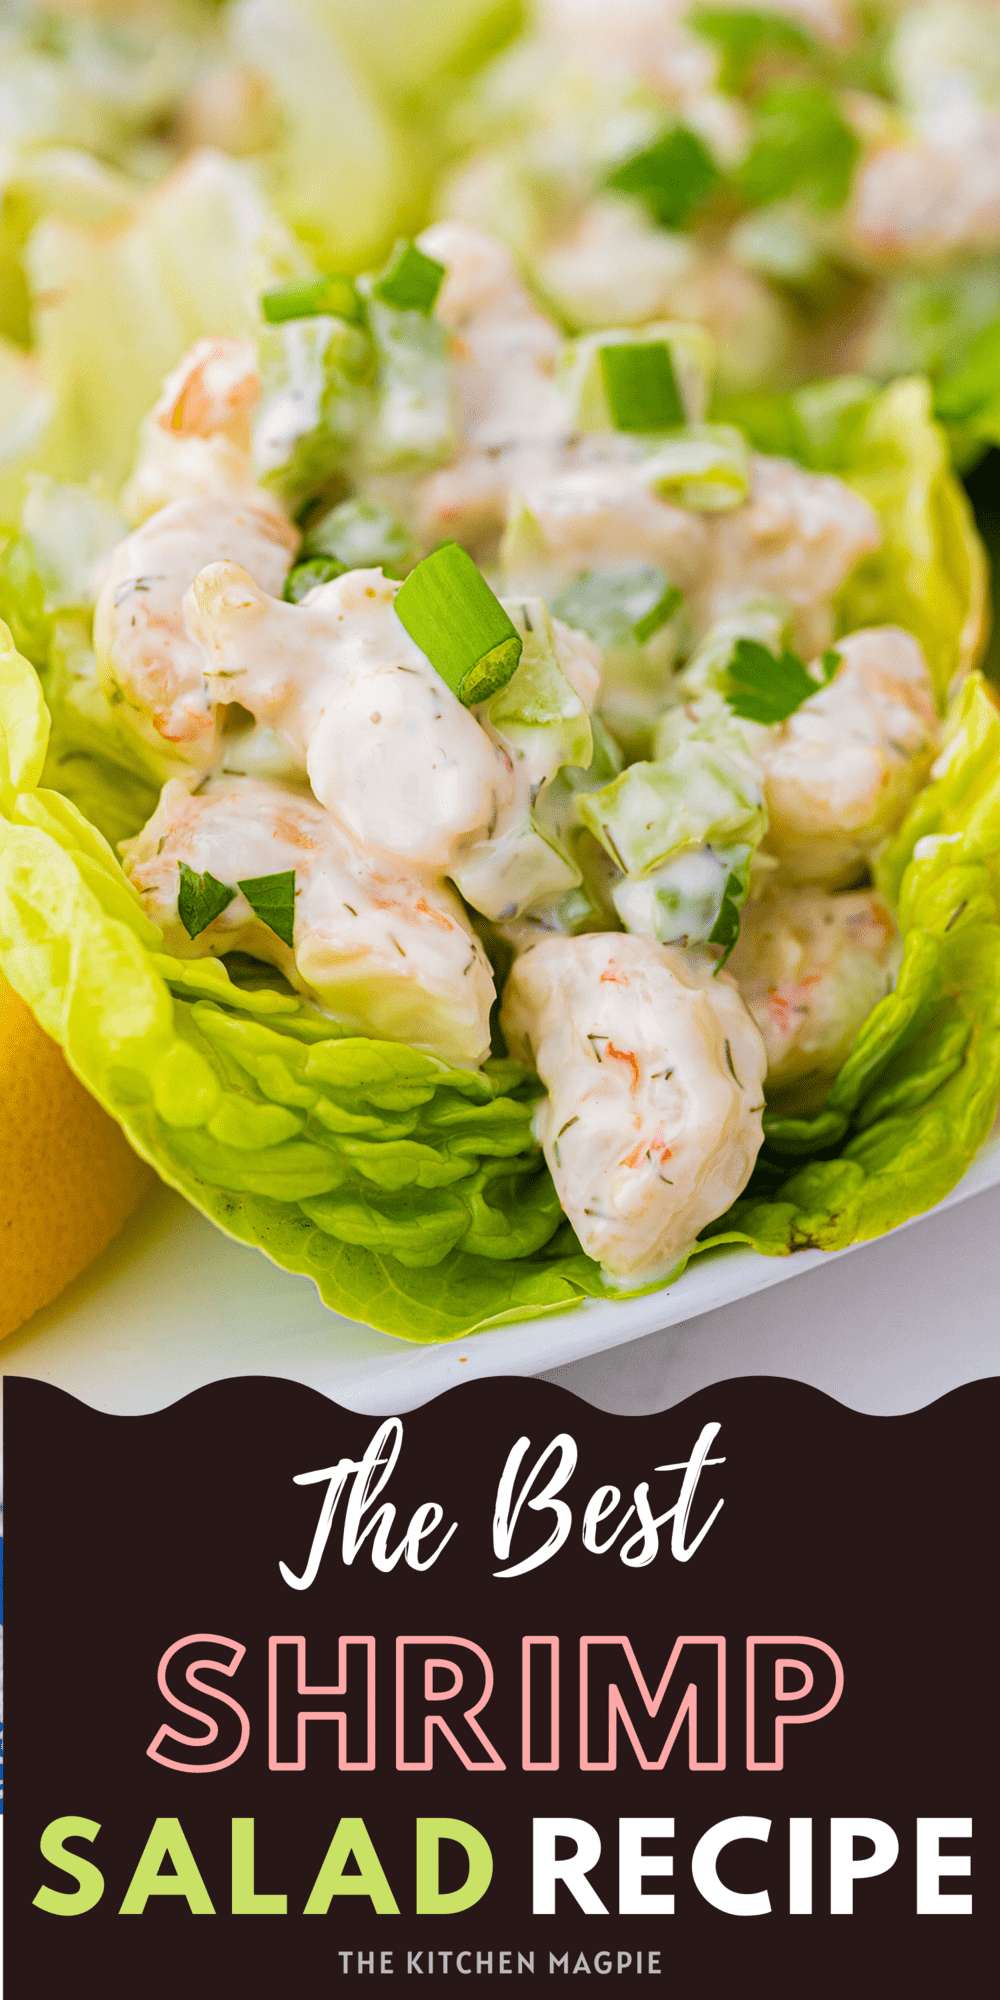 This light and easy shrimp salad recipe is the perfect way to use up shrimp! Eat in lettuce cups, on crackers, or on top of a green salad.